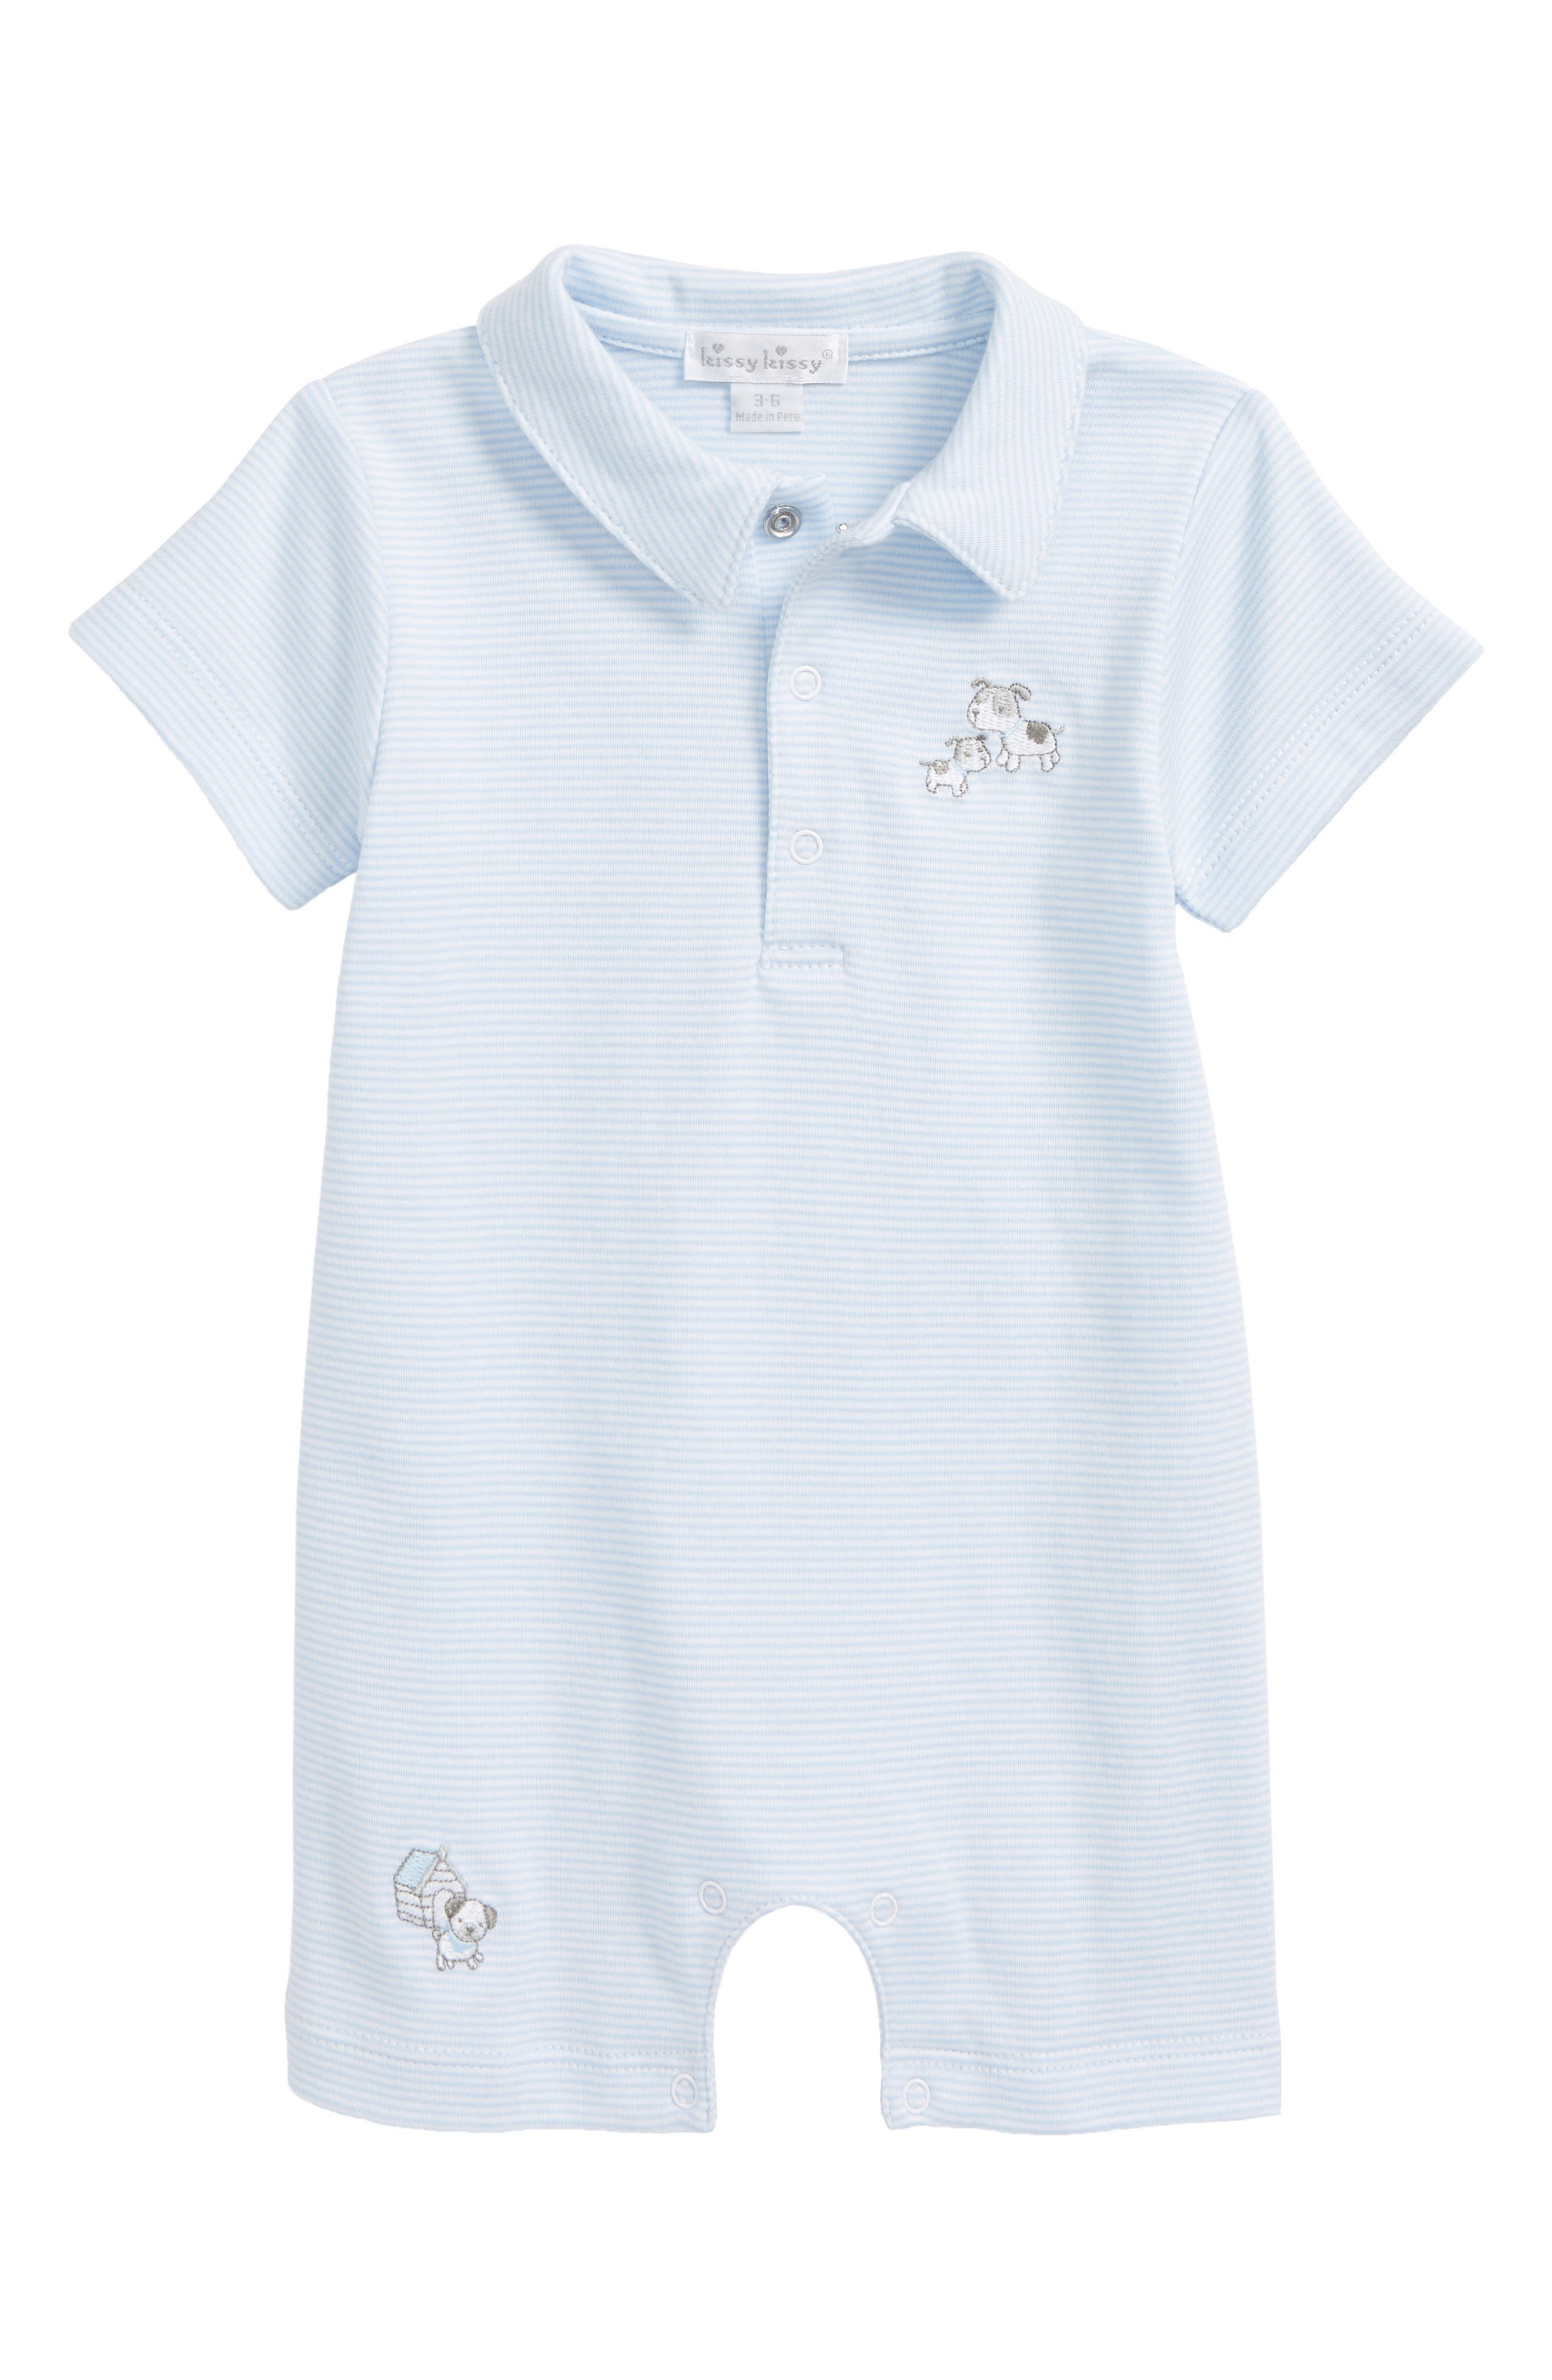 Dog Day Out Polo Romper,                             Main thumbnail 1, color,                             480